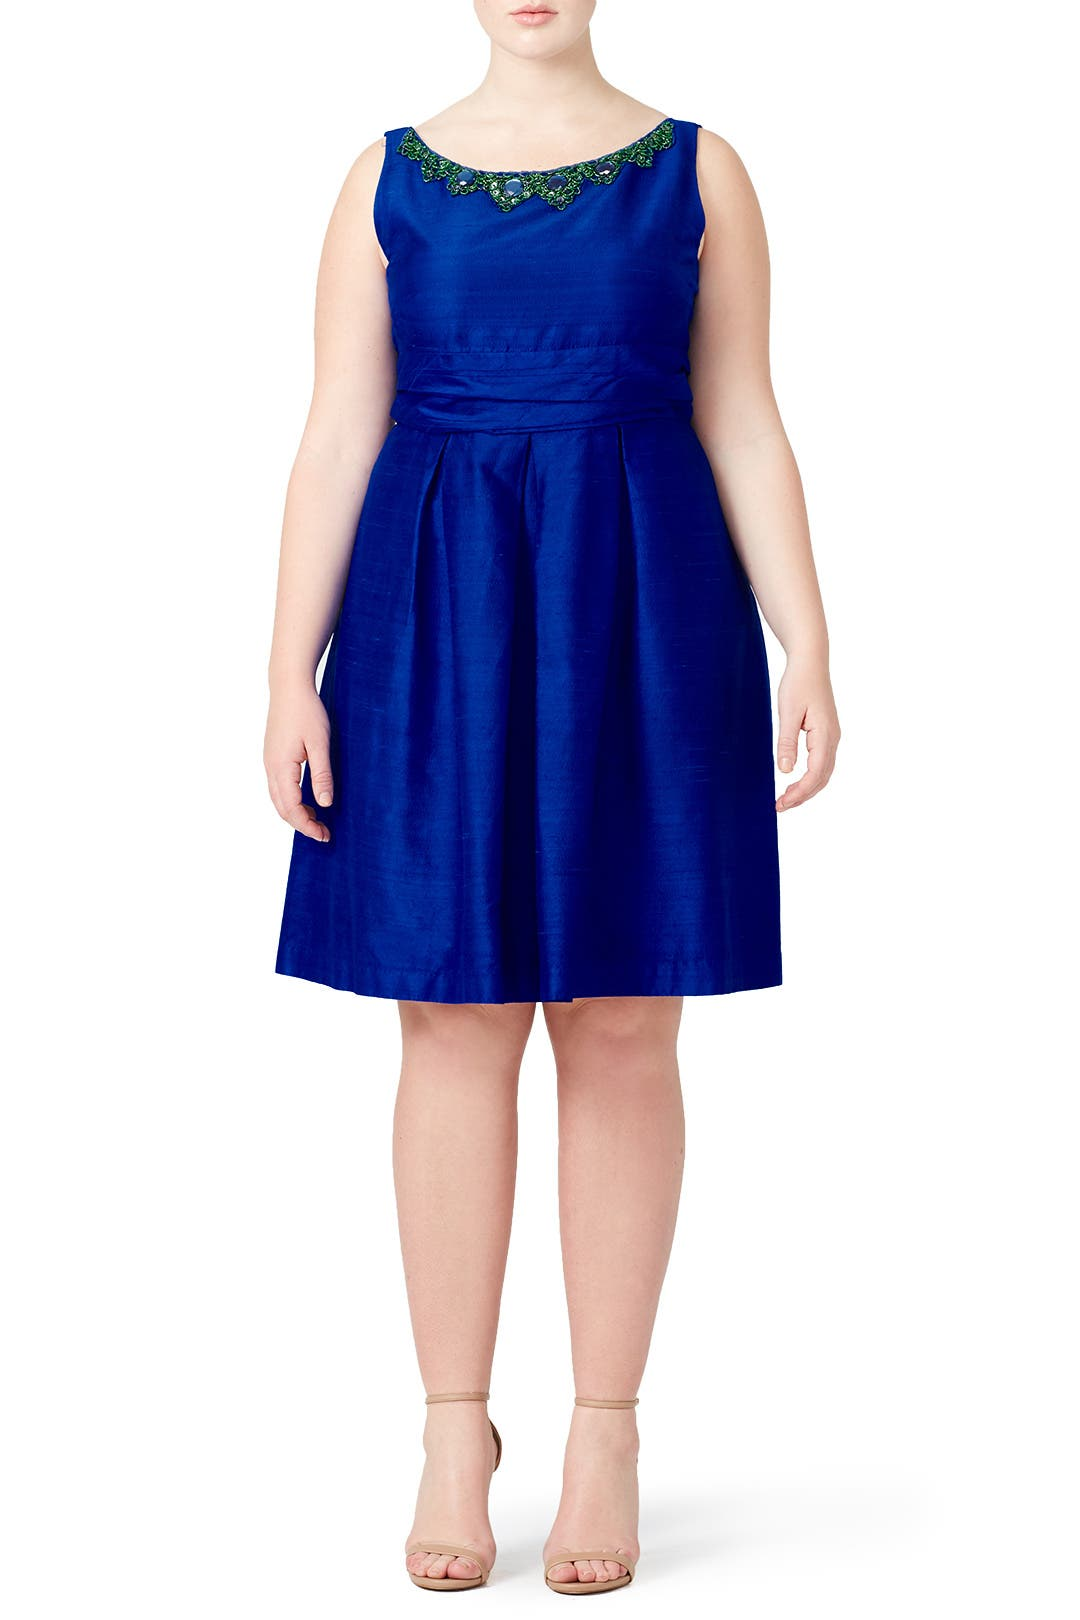 Out To Sea Dress By Kay Unger For 88 Rent The Runway